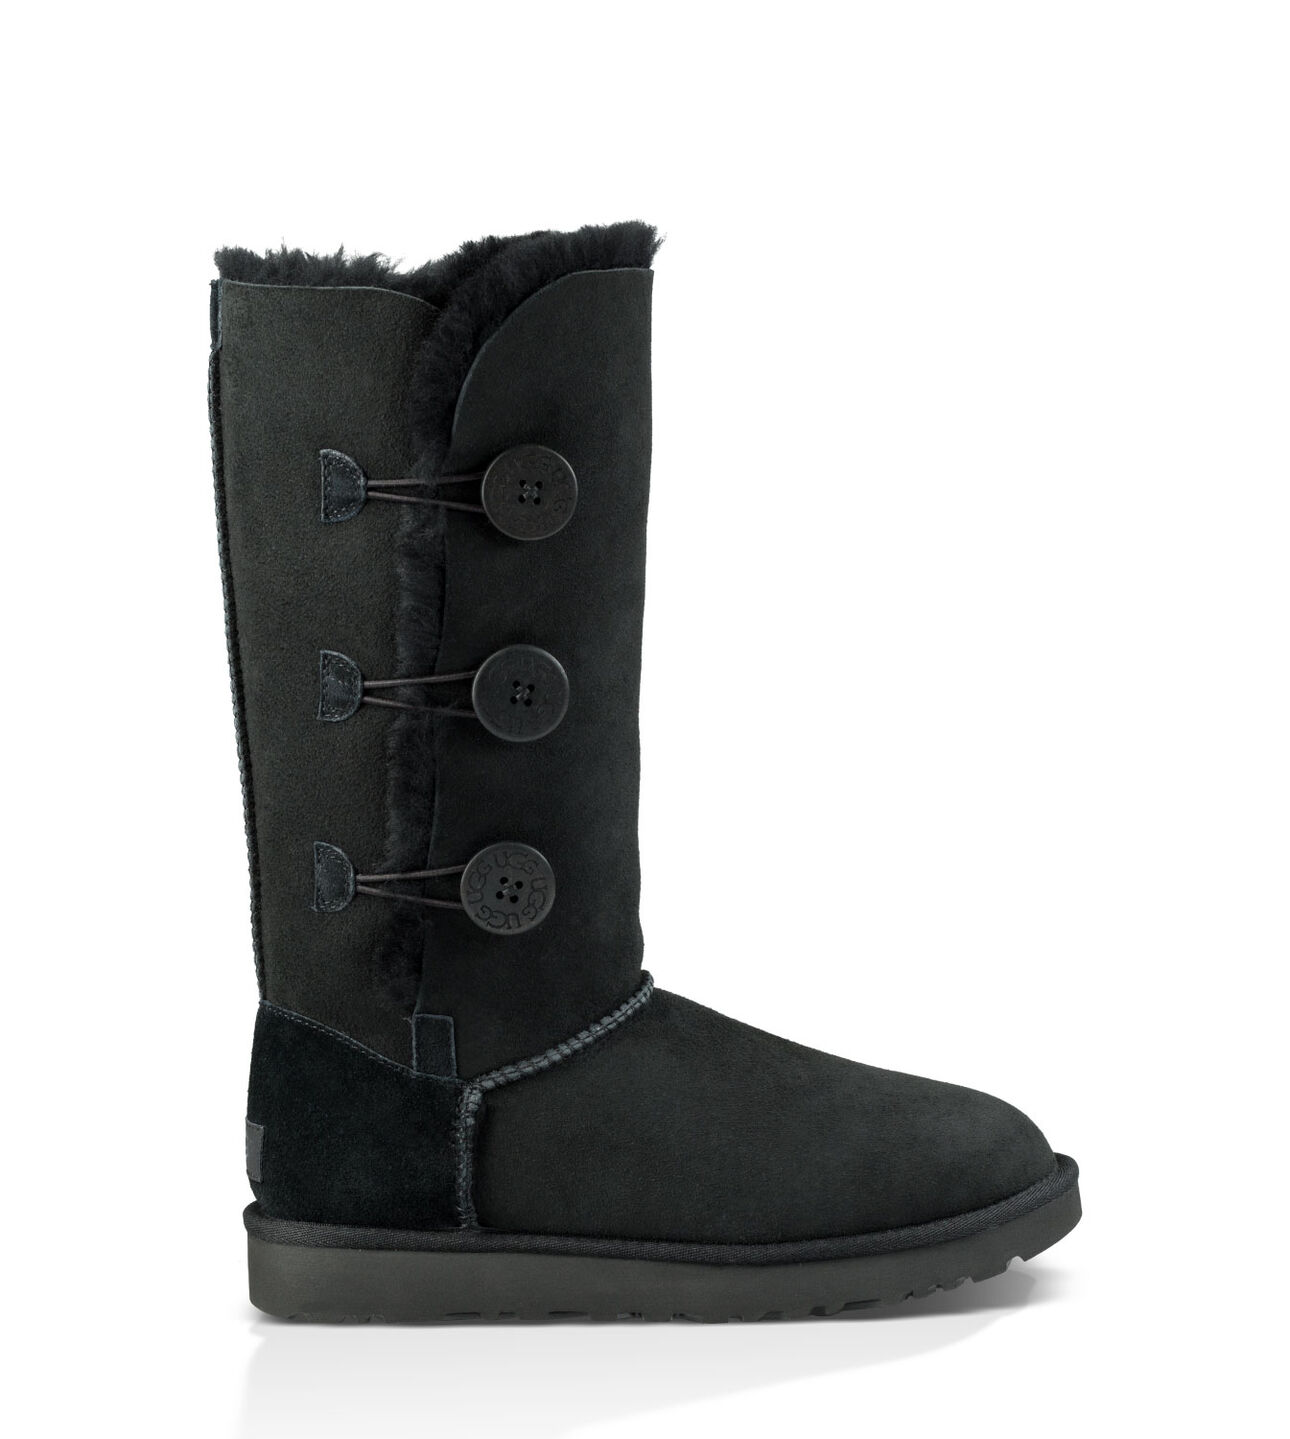 c6369a0981a UGG Bailey Button Triplet